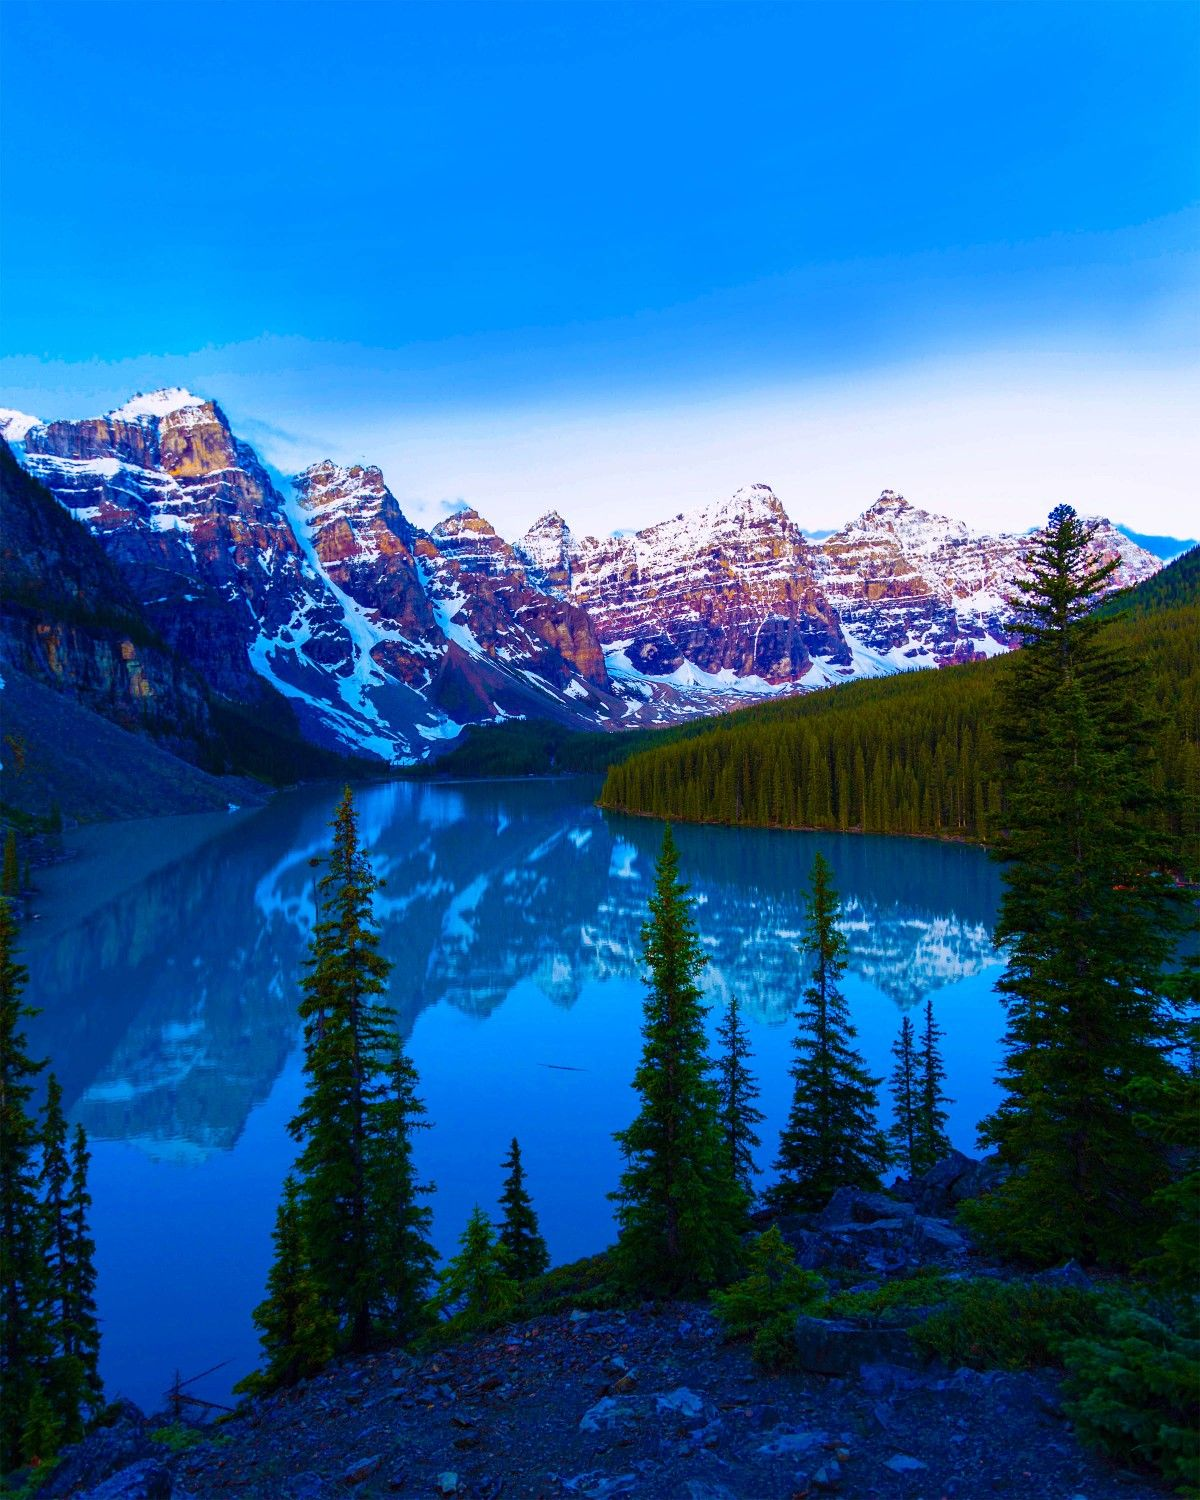 Mountain And Lake Wallpaper Android Wallpaper Iphone Wallpaper Hdwallpaper Best Wallpap Android Wallpaper Mountain Android Wallpaper Android Wallpaper 4k